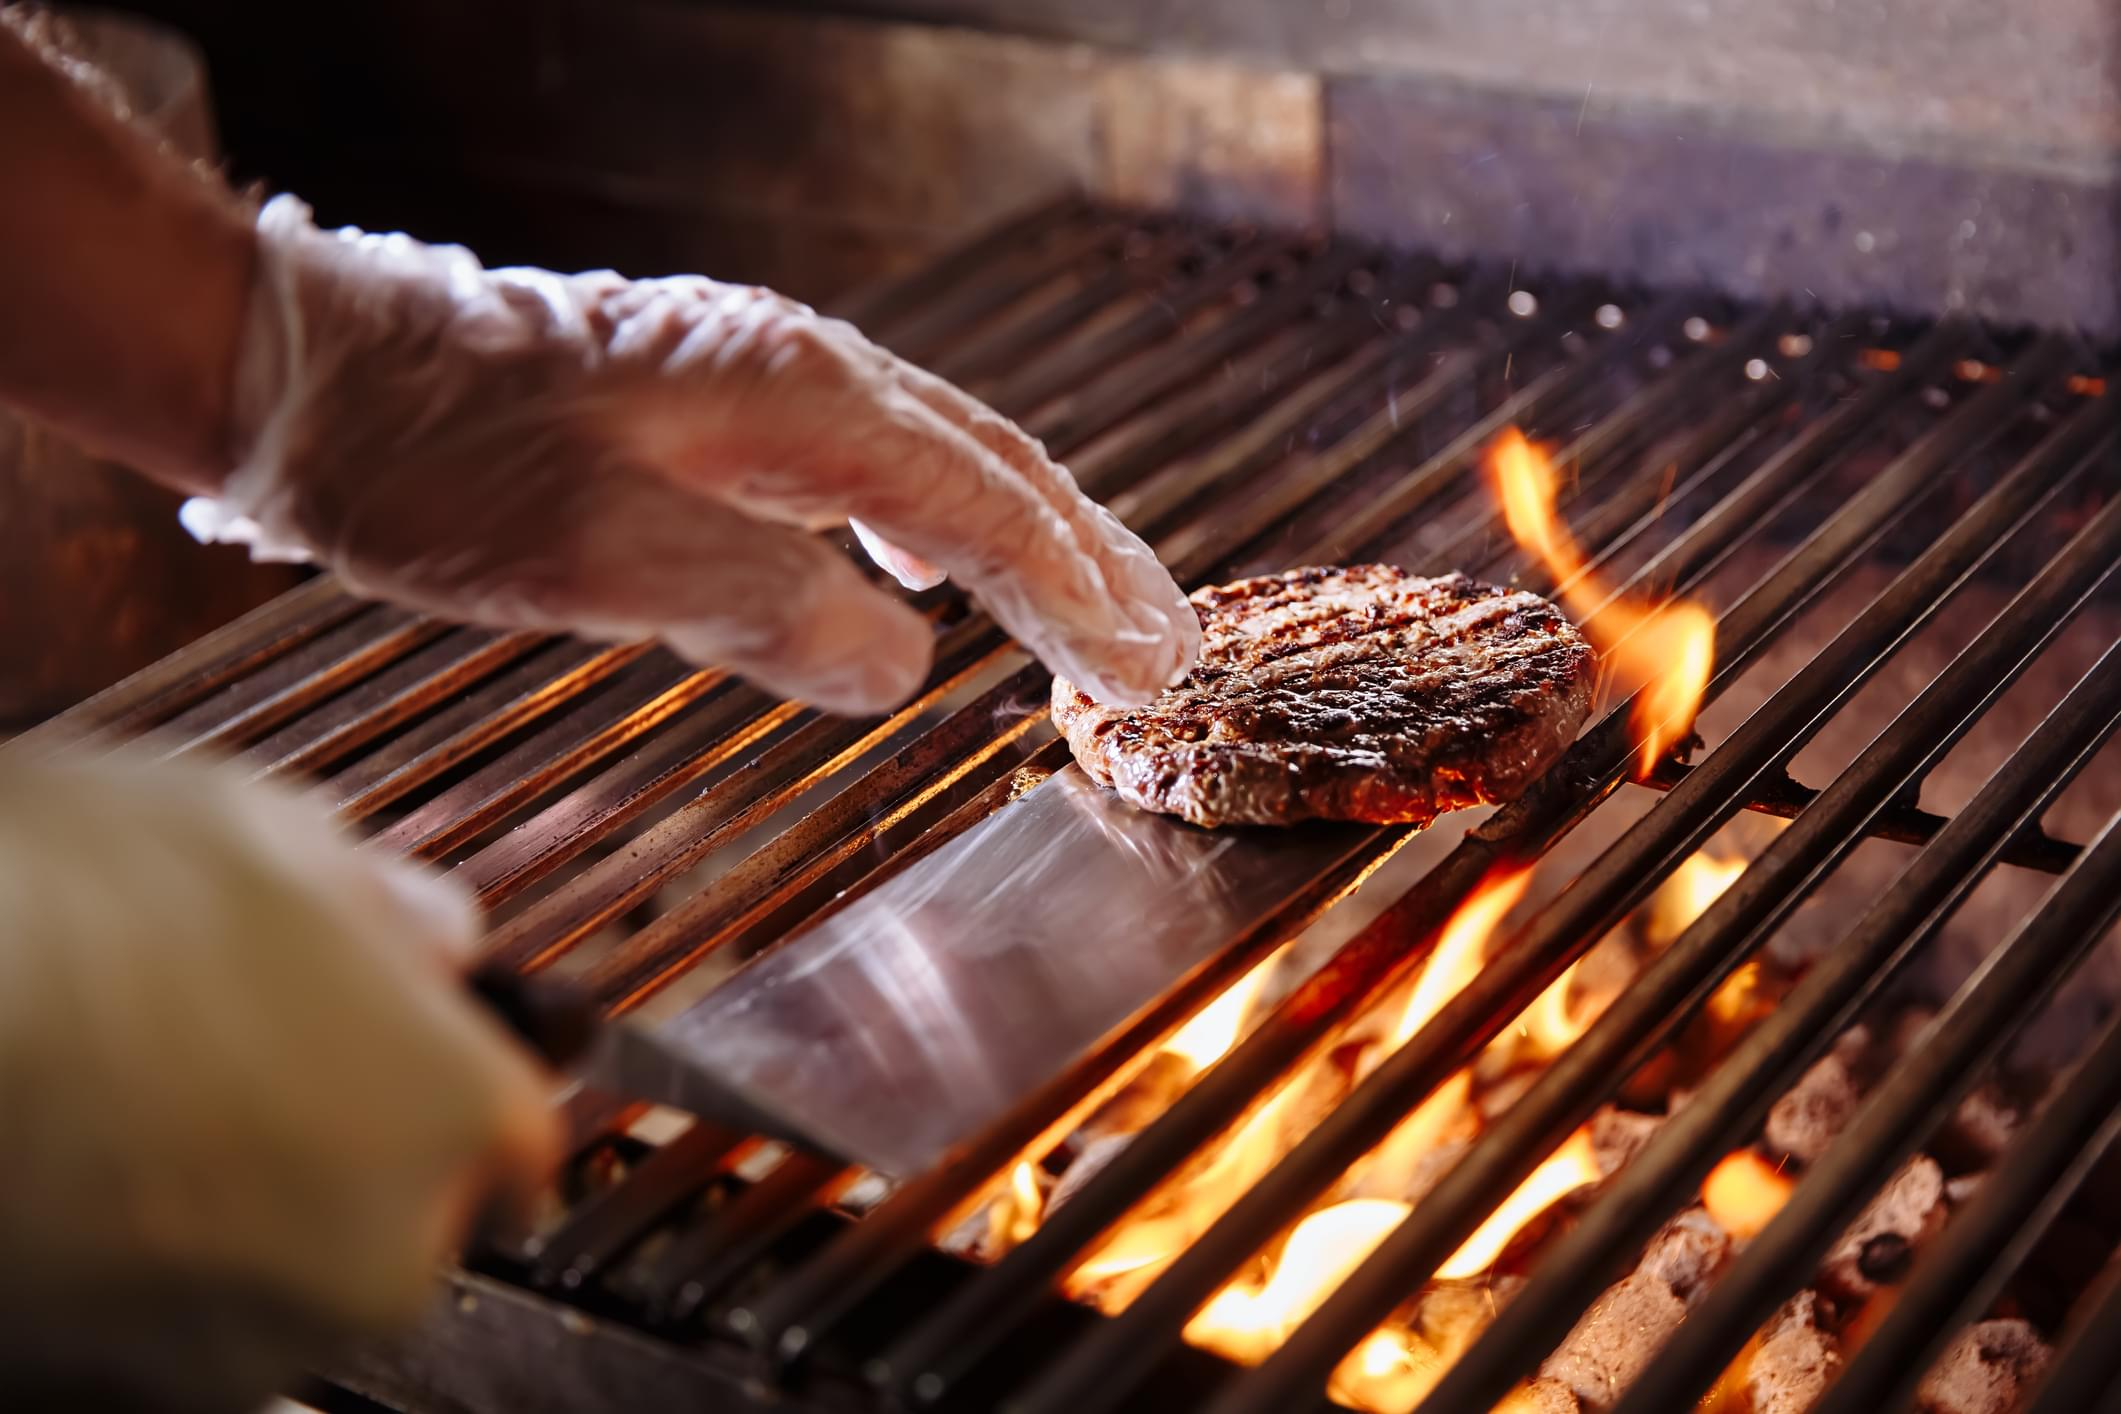 Chef making burger. Beef or pork meat barbecue burgers for hamburger prepared grilled on bbq fire flame grill. Close-up shot of chef's hands turn the chop on the grill